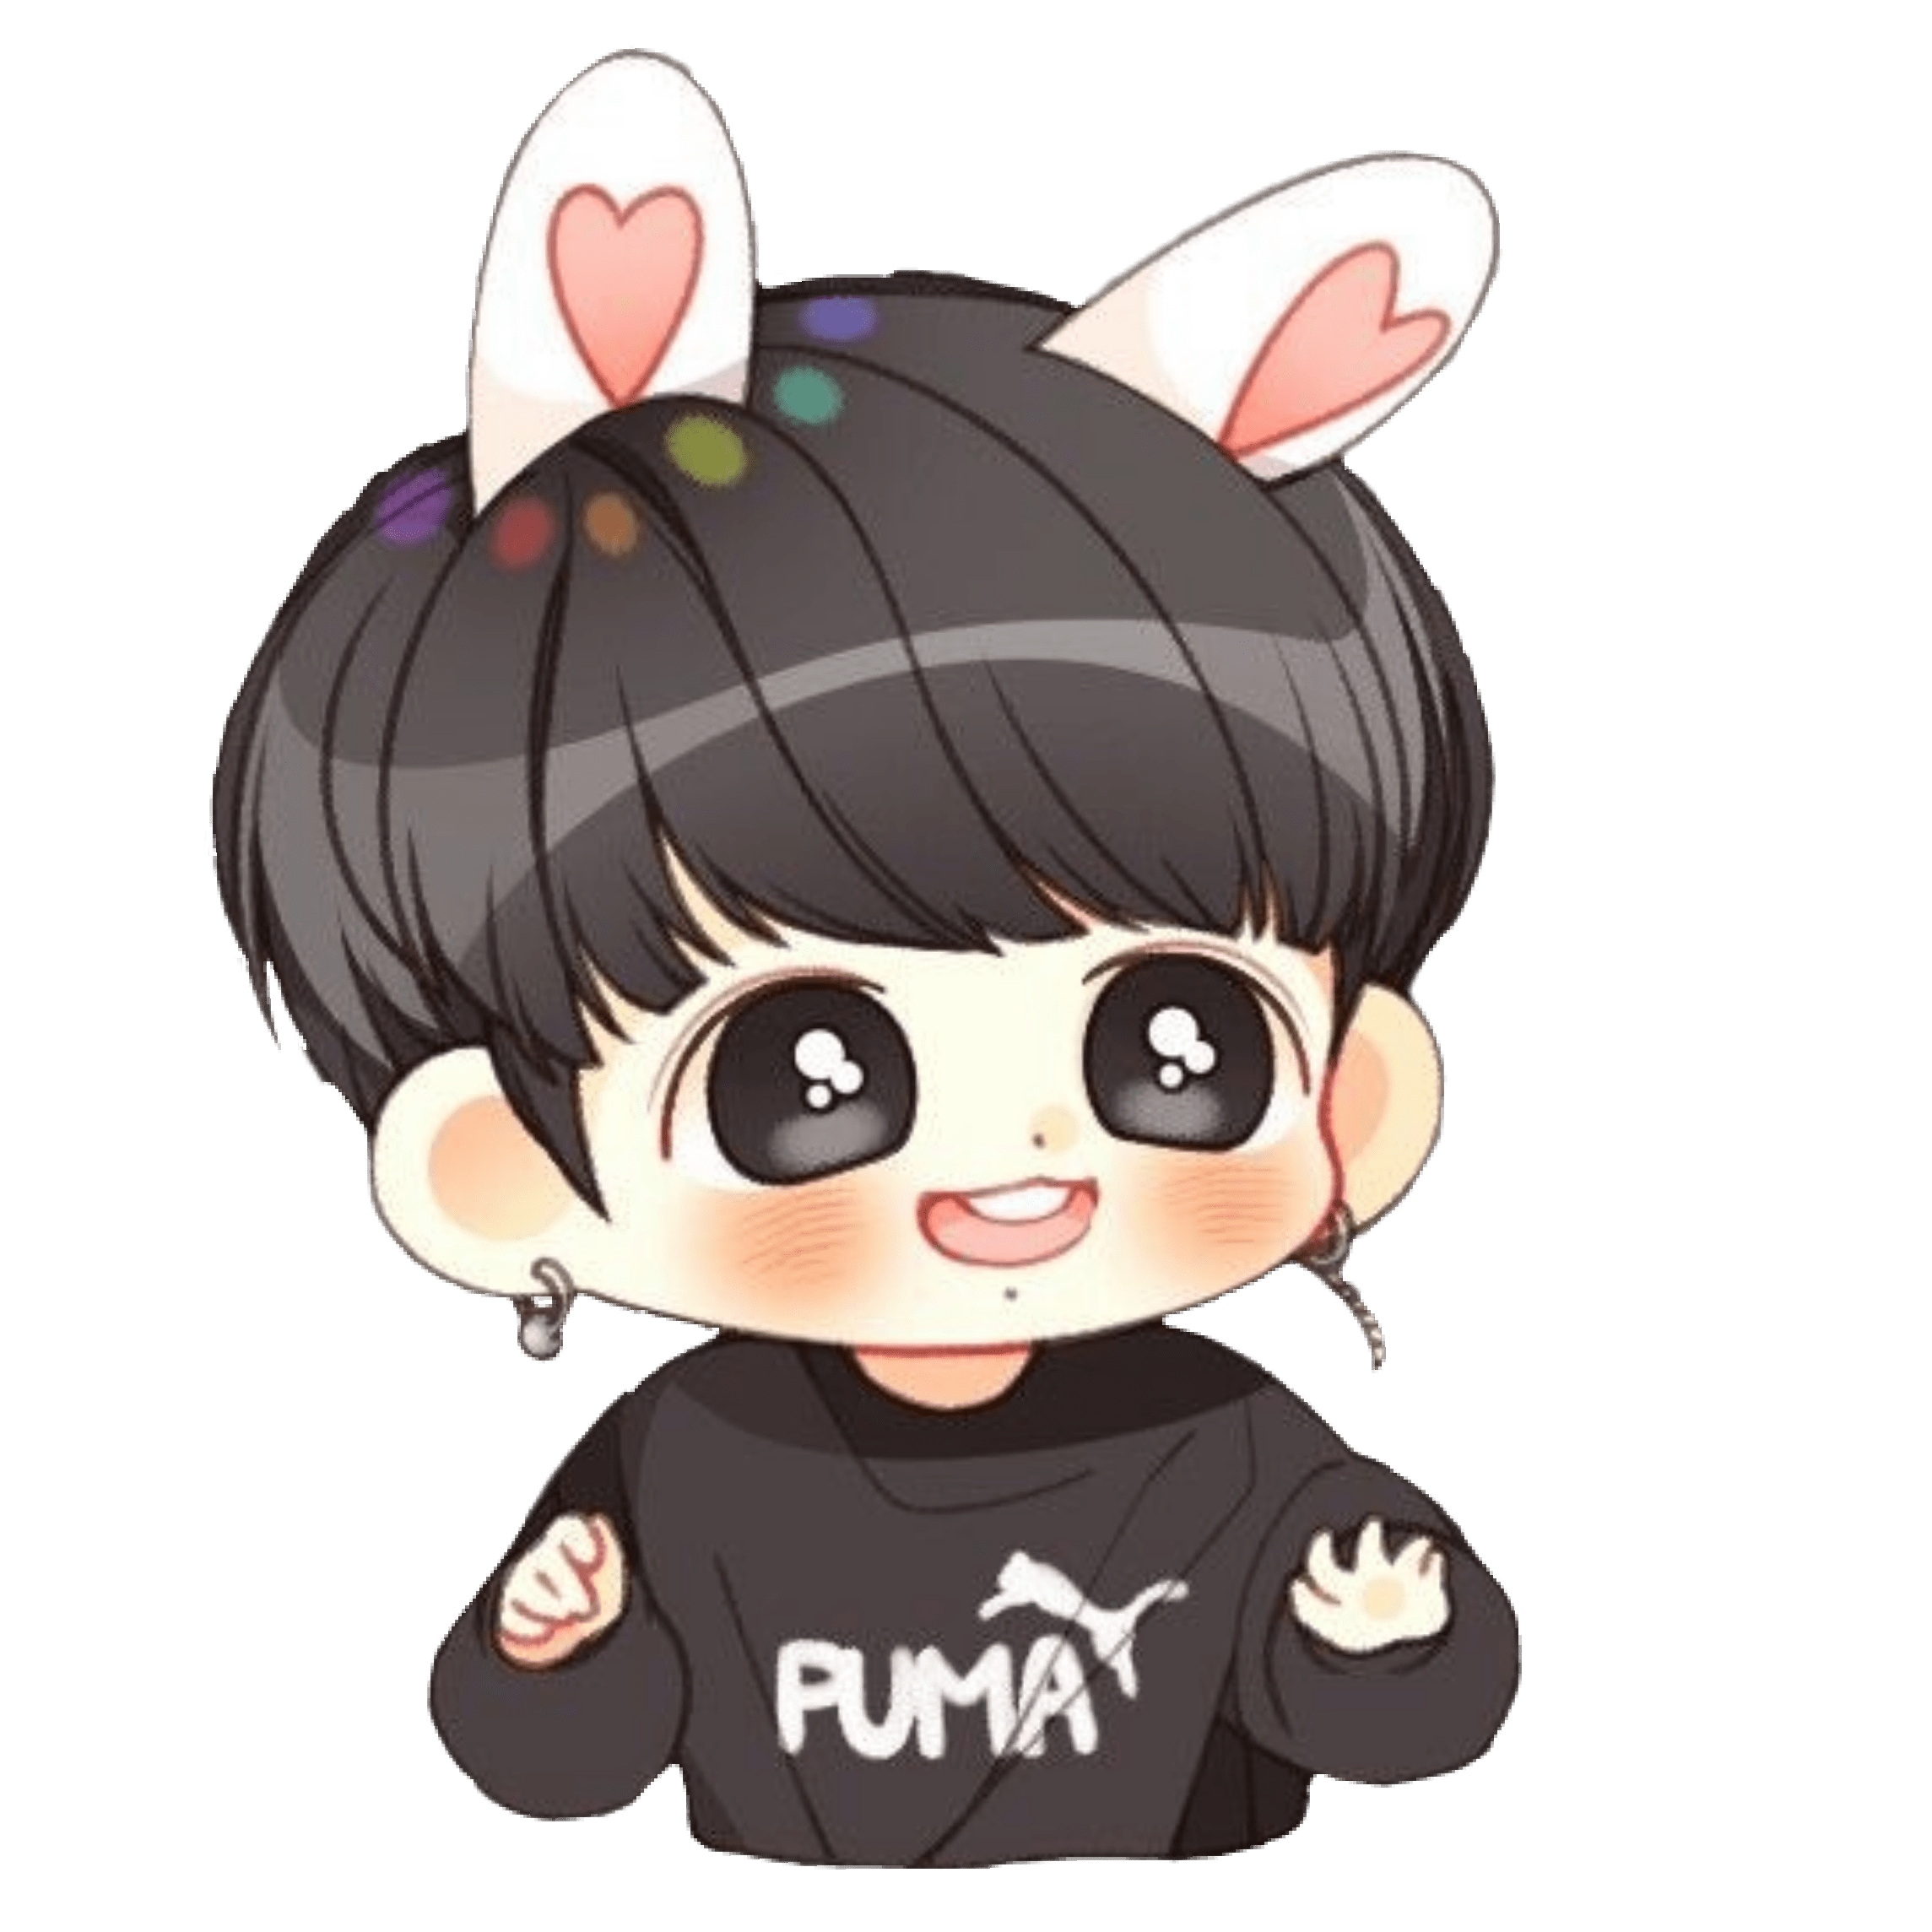 Jhope Drawing Anime Transparent Png Clipart Free Download Ya